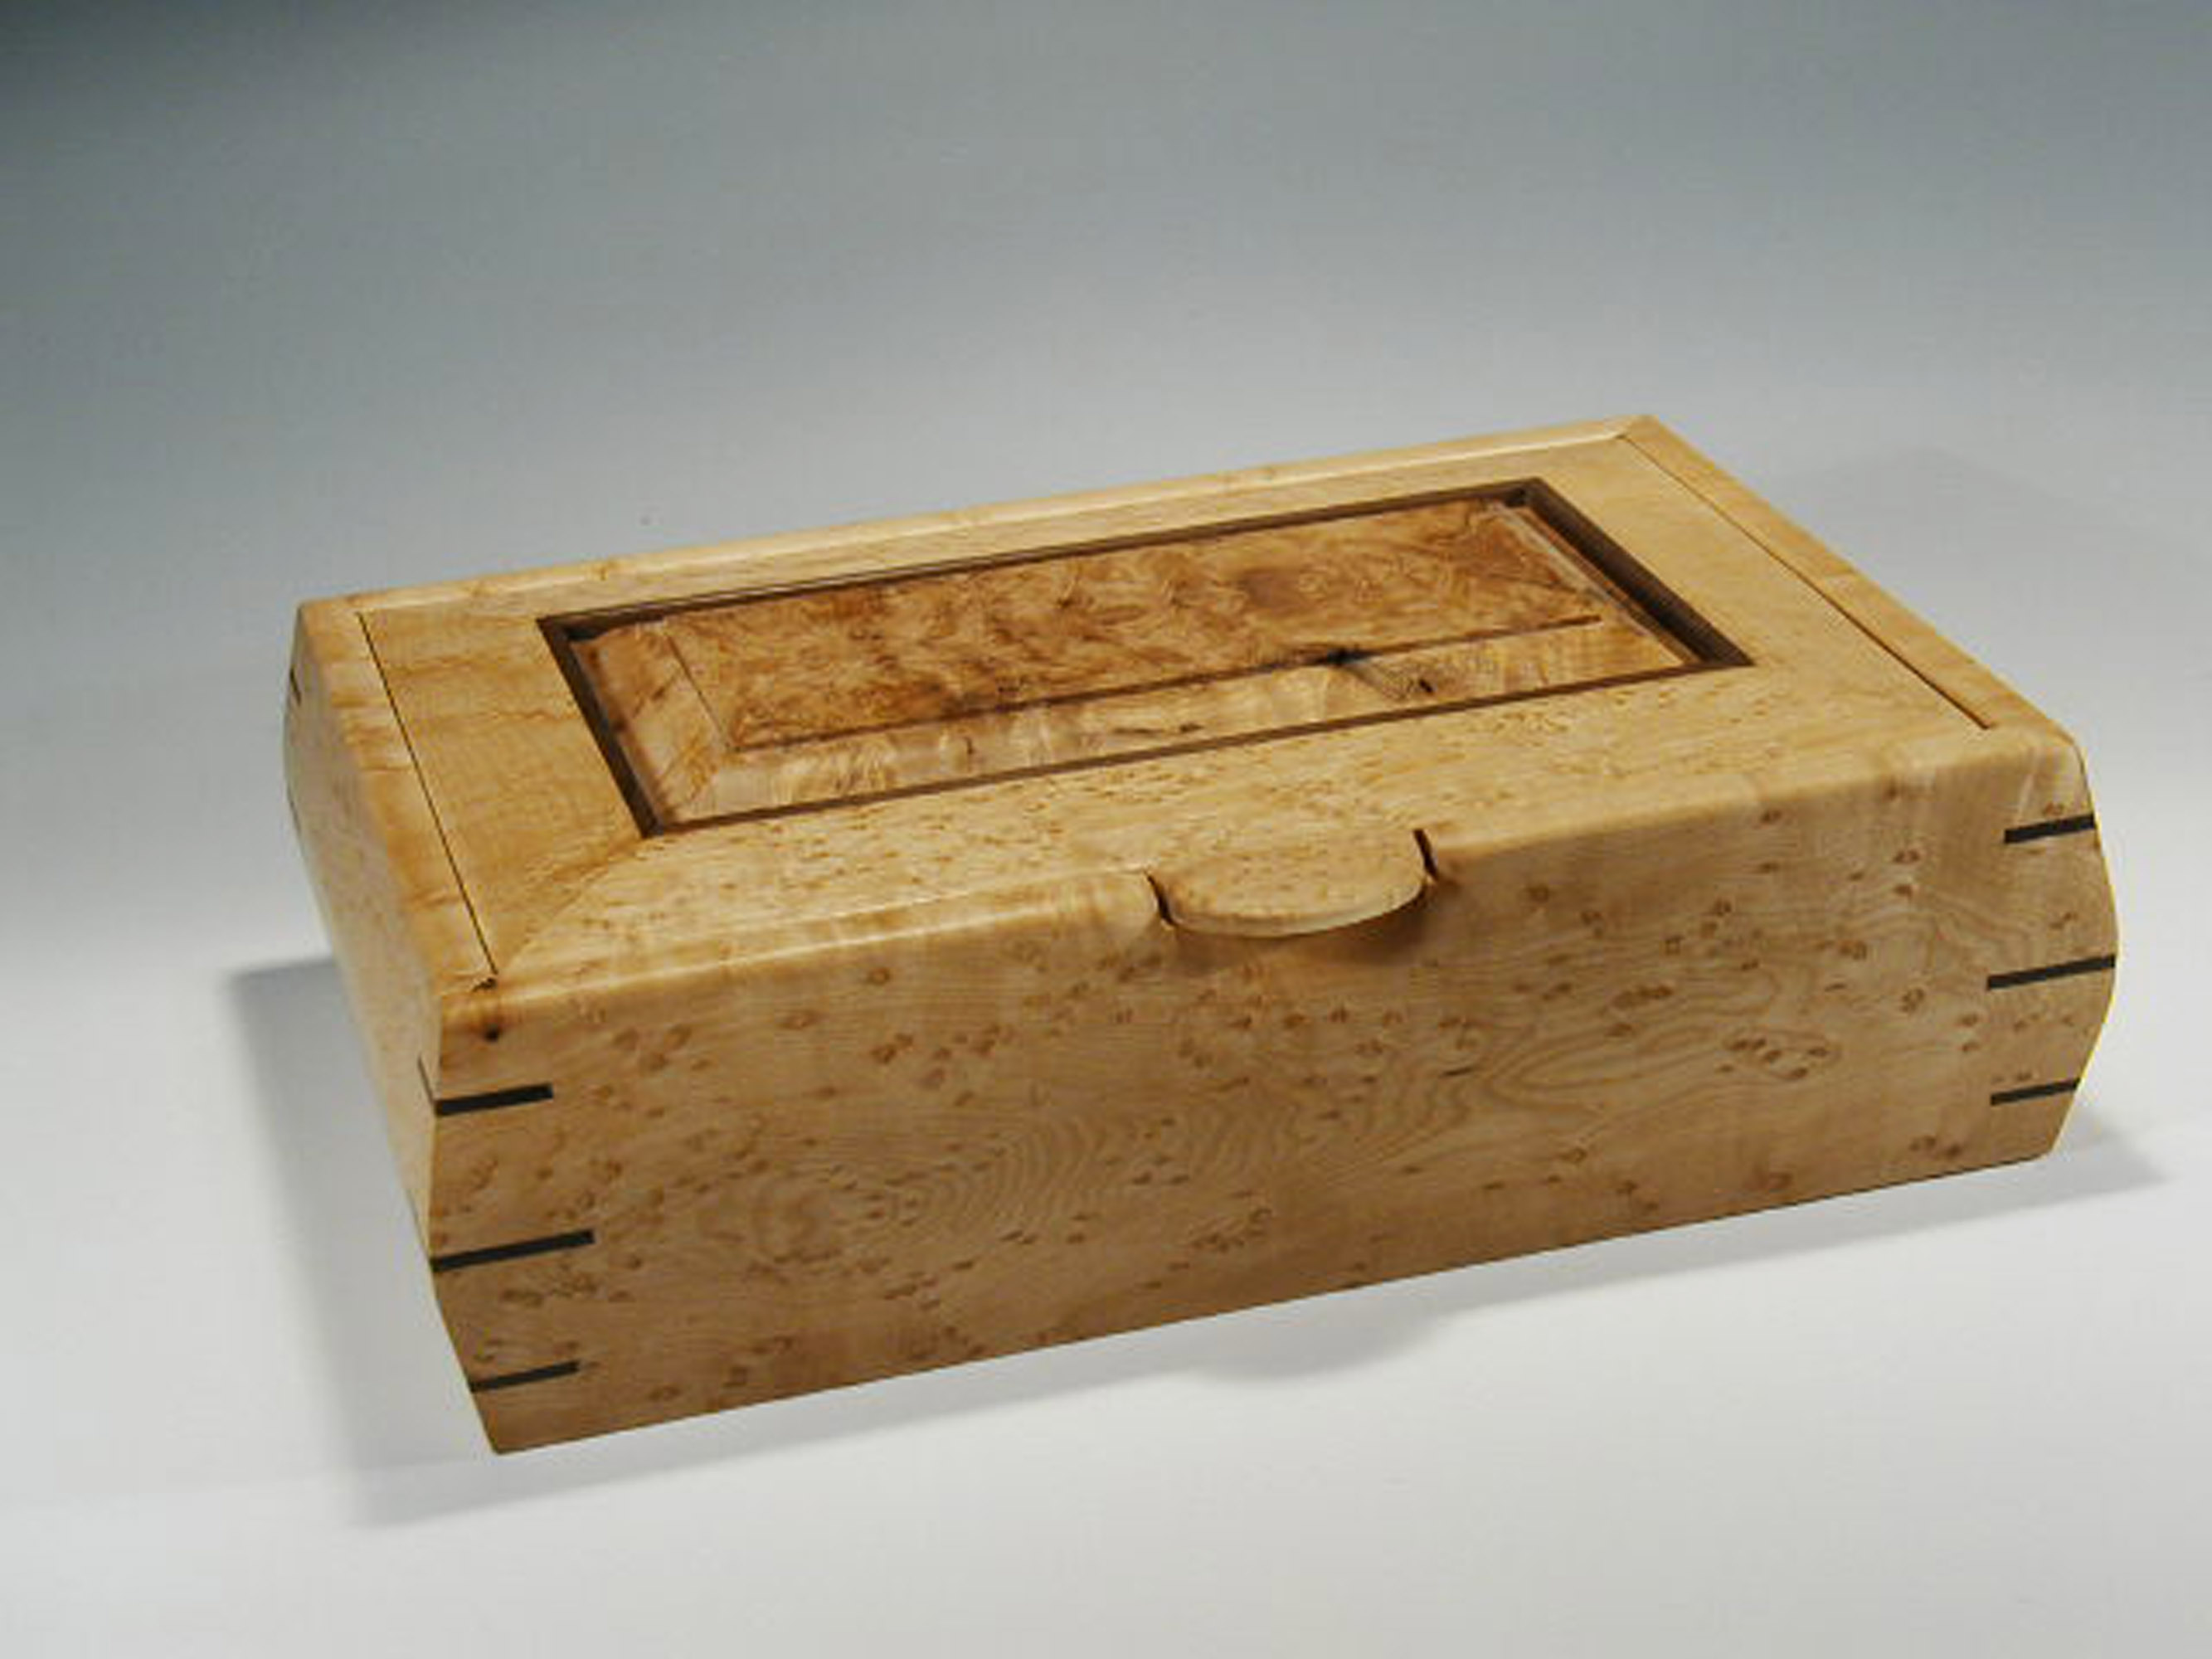 Handmade wooden jewelry box that has a lid that lifts open; this box is made of birdseye maple